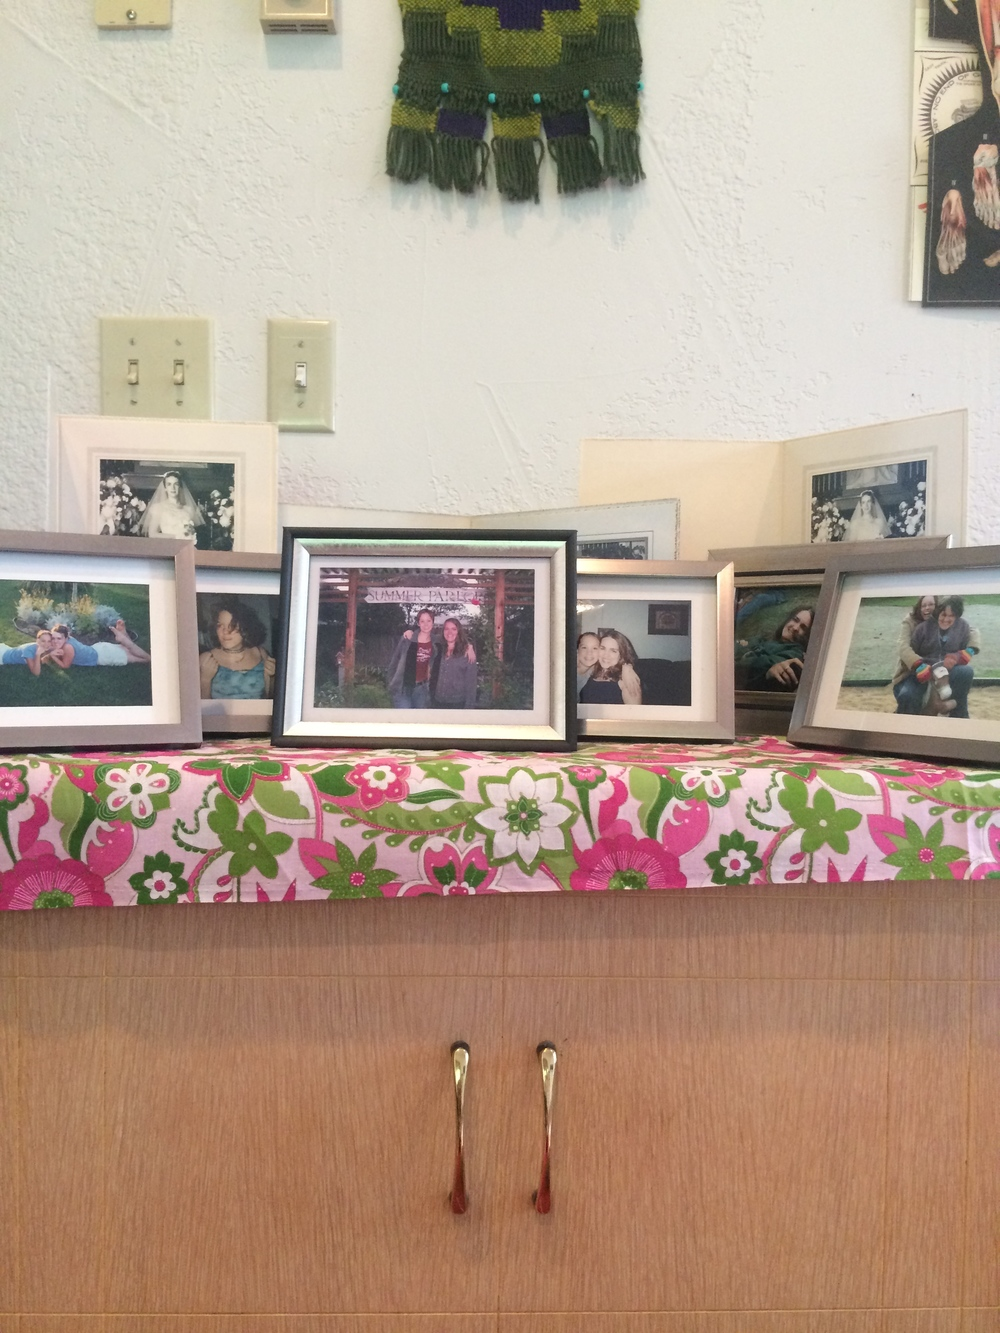 All objects seem to have story, don't they?  The story these objects tell revolve around women in my life, and how they loved and supported me during my wedding.  The cedar chest belonged to my Aunt Jeanette.  The colored photographs were amassed and framed by Leah in honor of our friendship for my bridal shower.  The black and white photographs peeking up from the back are of my Aunt Jeanette at her first wedding, she was 19 years old.  The flowered fabric, pink and green, was part of my bridal shower gift from Erica.